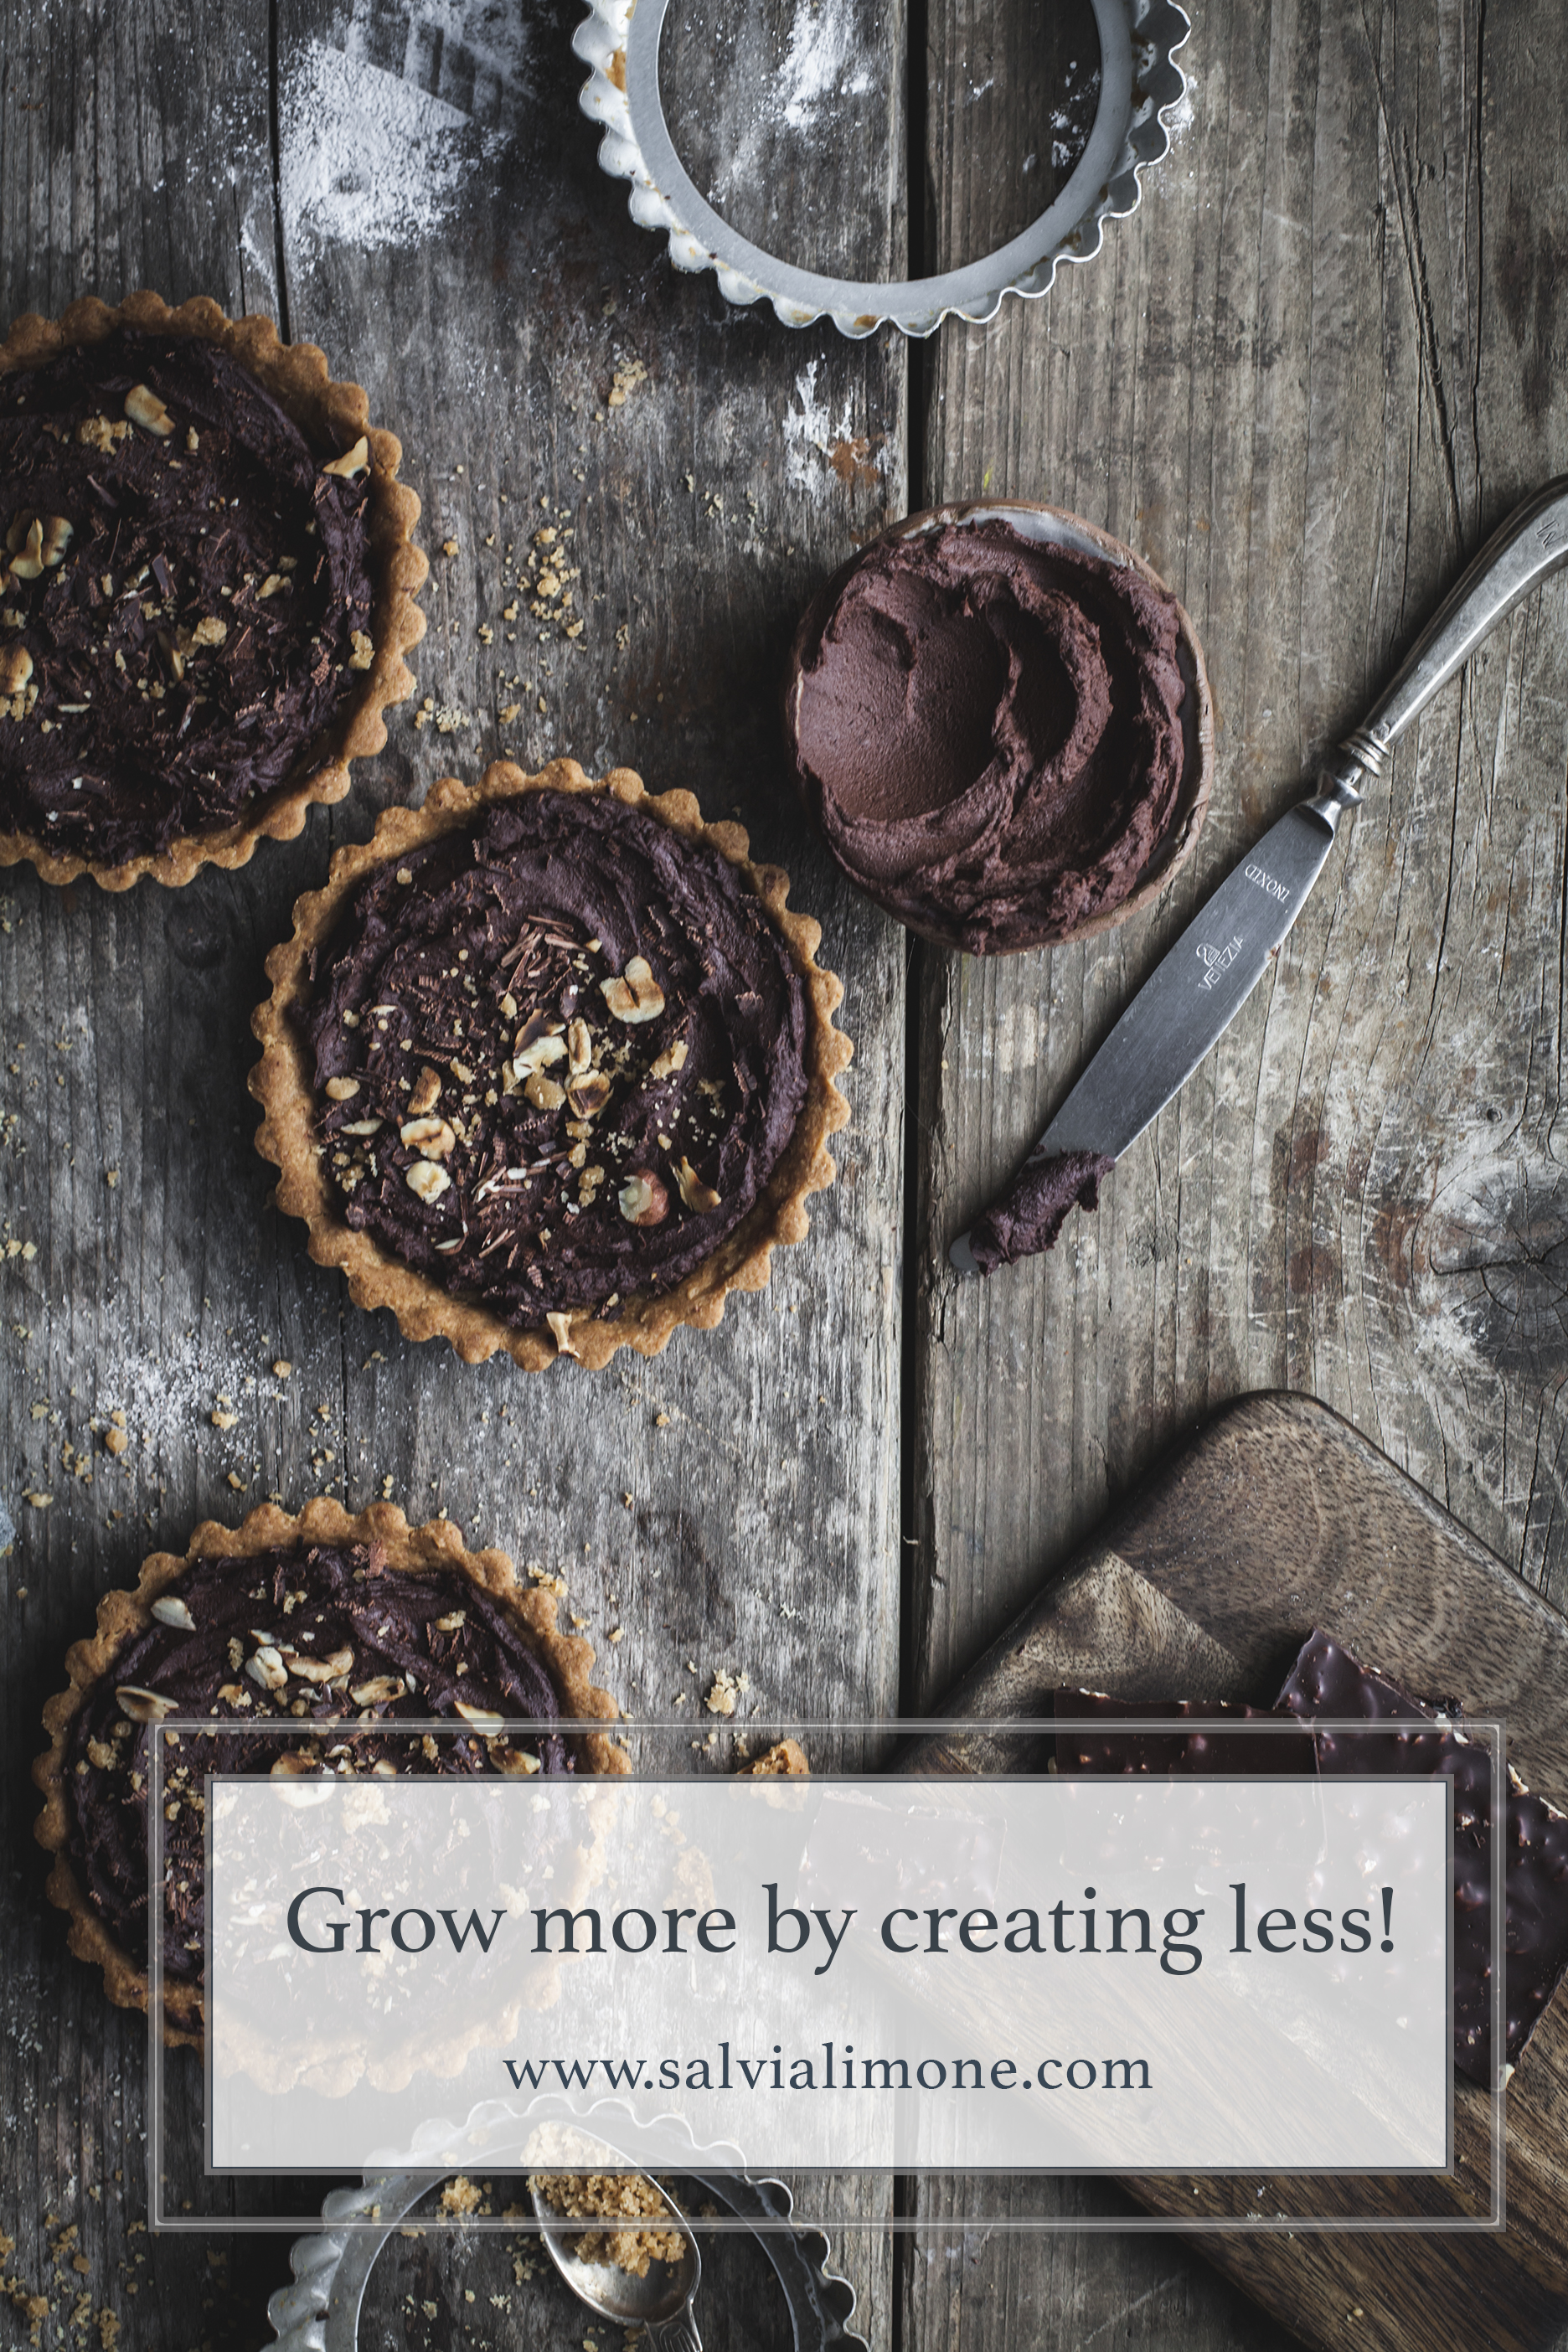 Grow more by creating less! #Instagram #foodphotography